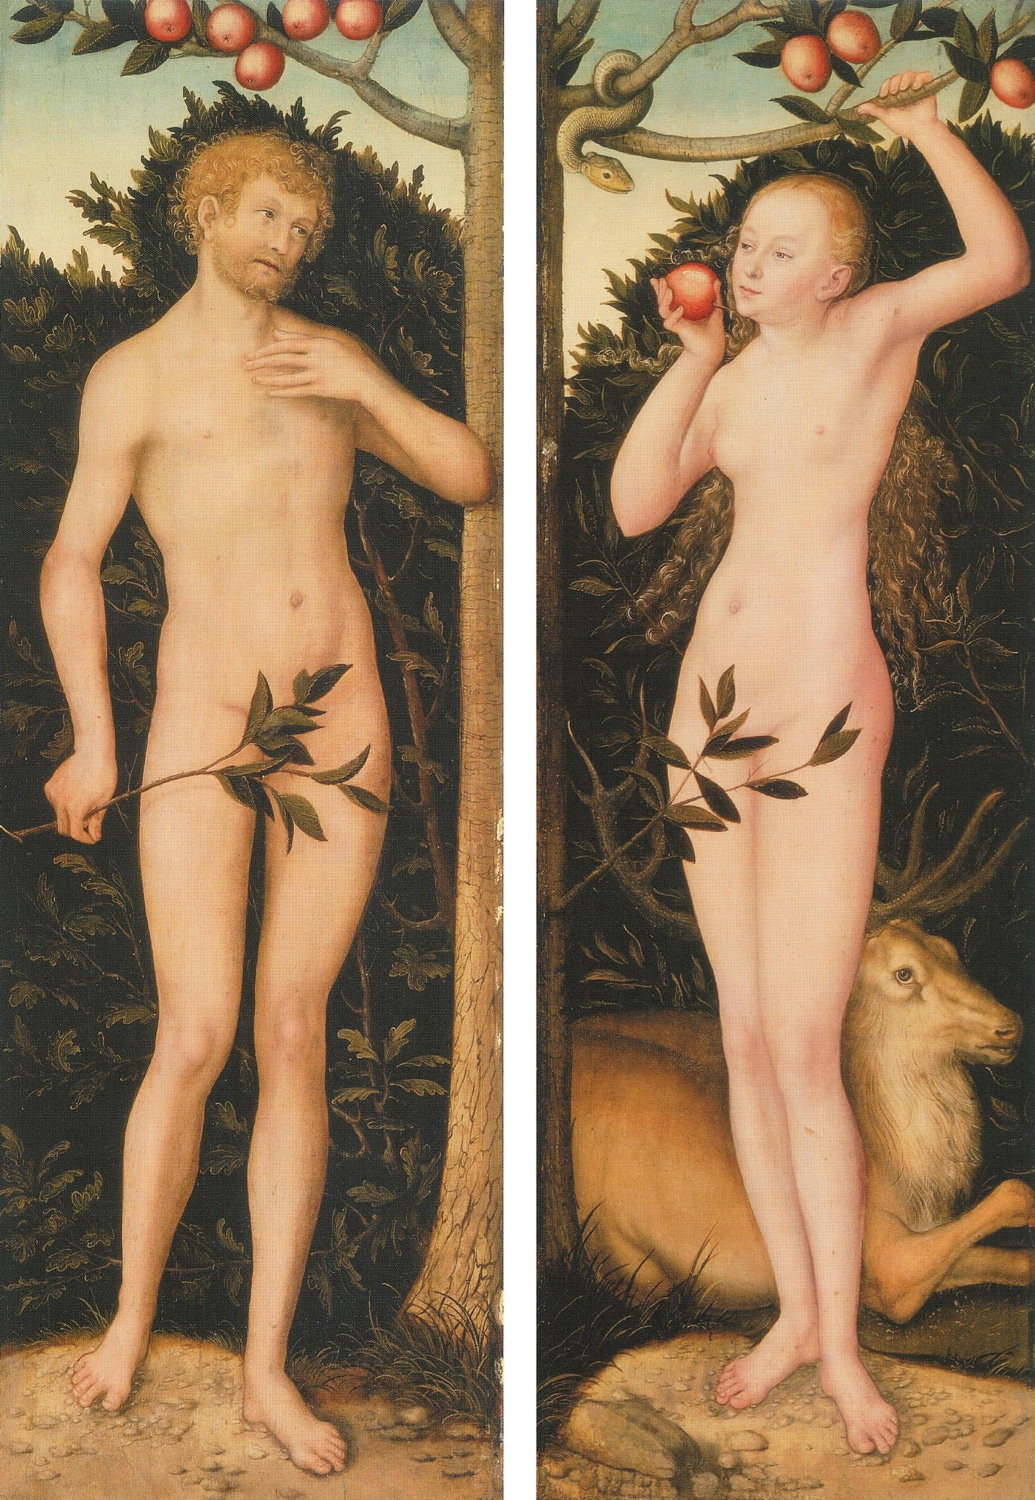 Lucas Cranach (1509-1533) painted this one of his many versions of Adam and Eve.